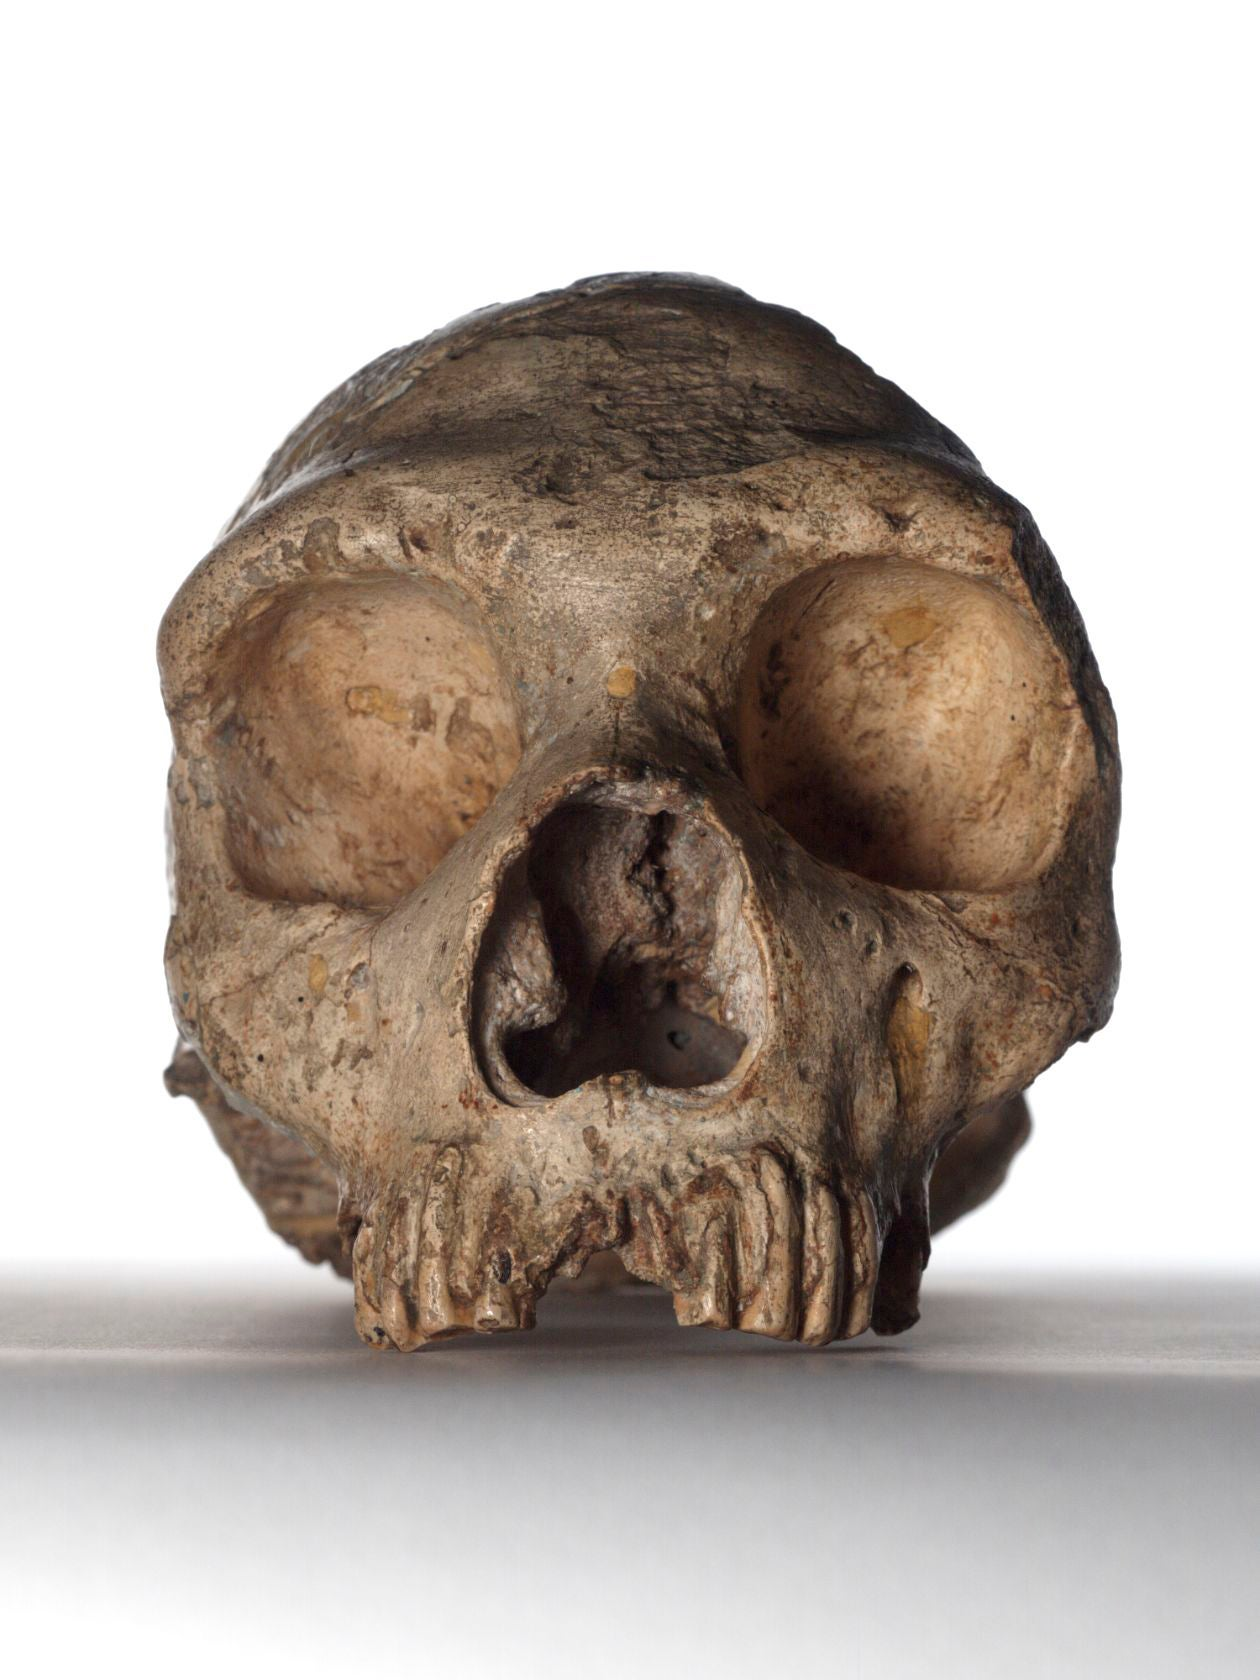 Neanderthals' large eyes led to their downfall, says study